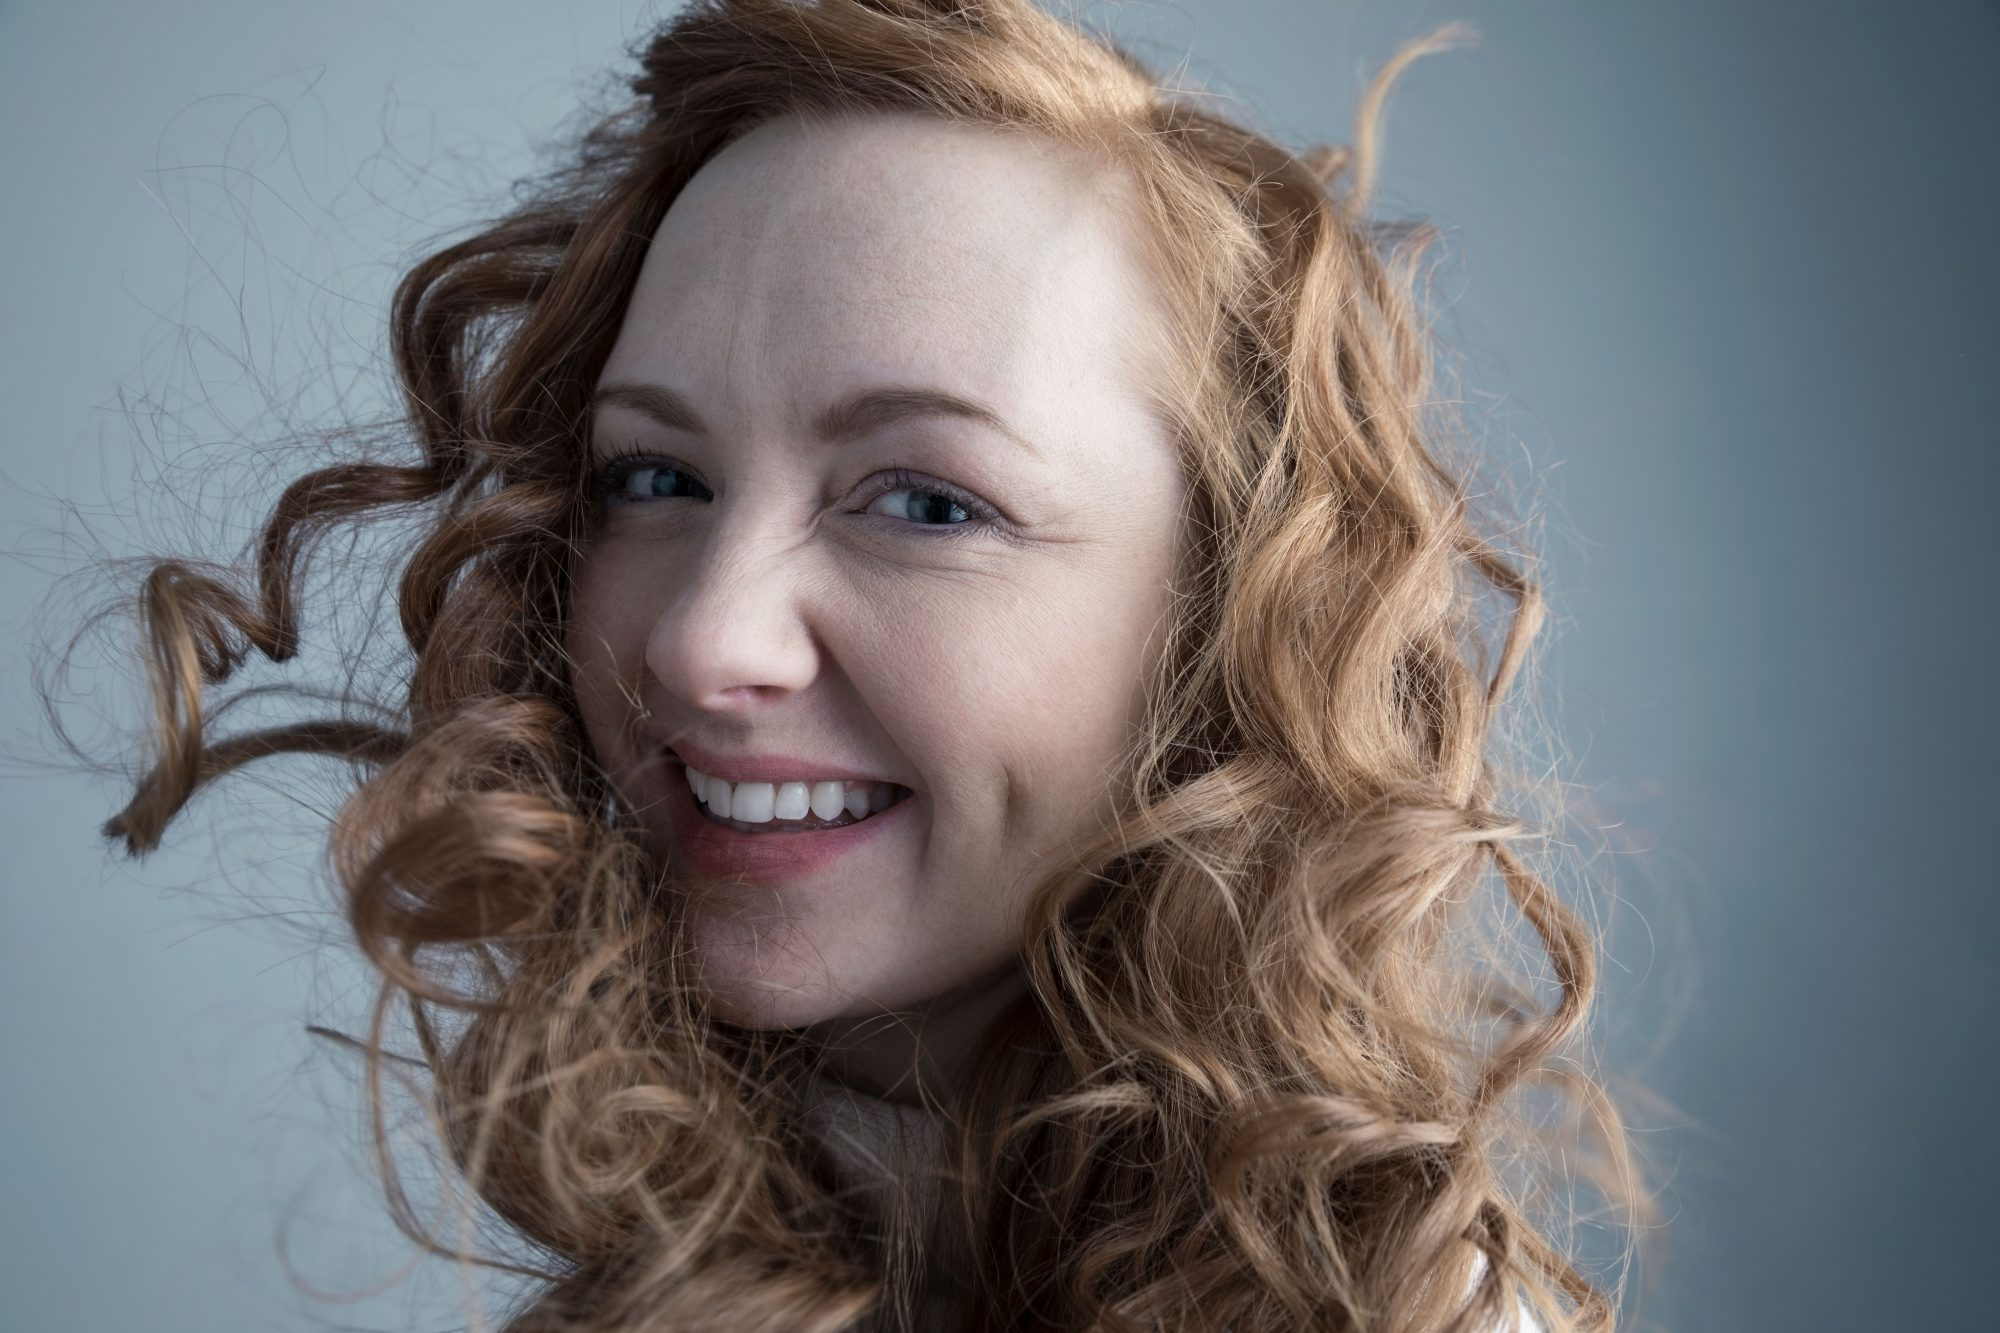 Woman with Red Hair Smiling